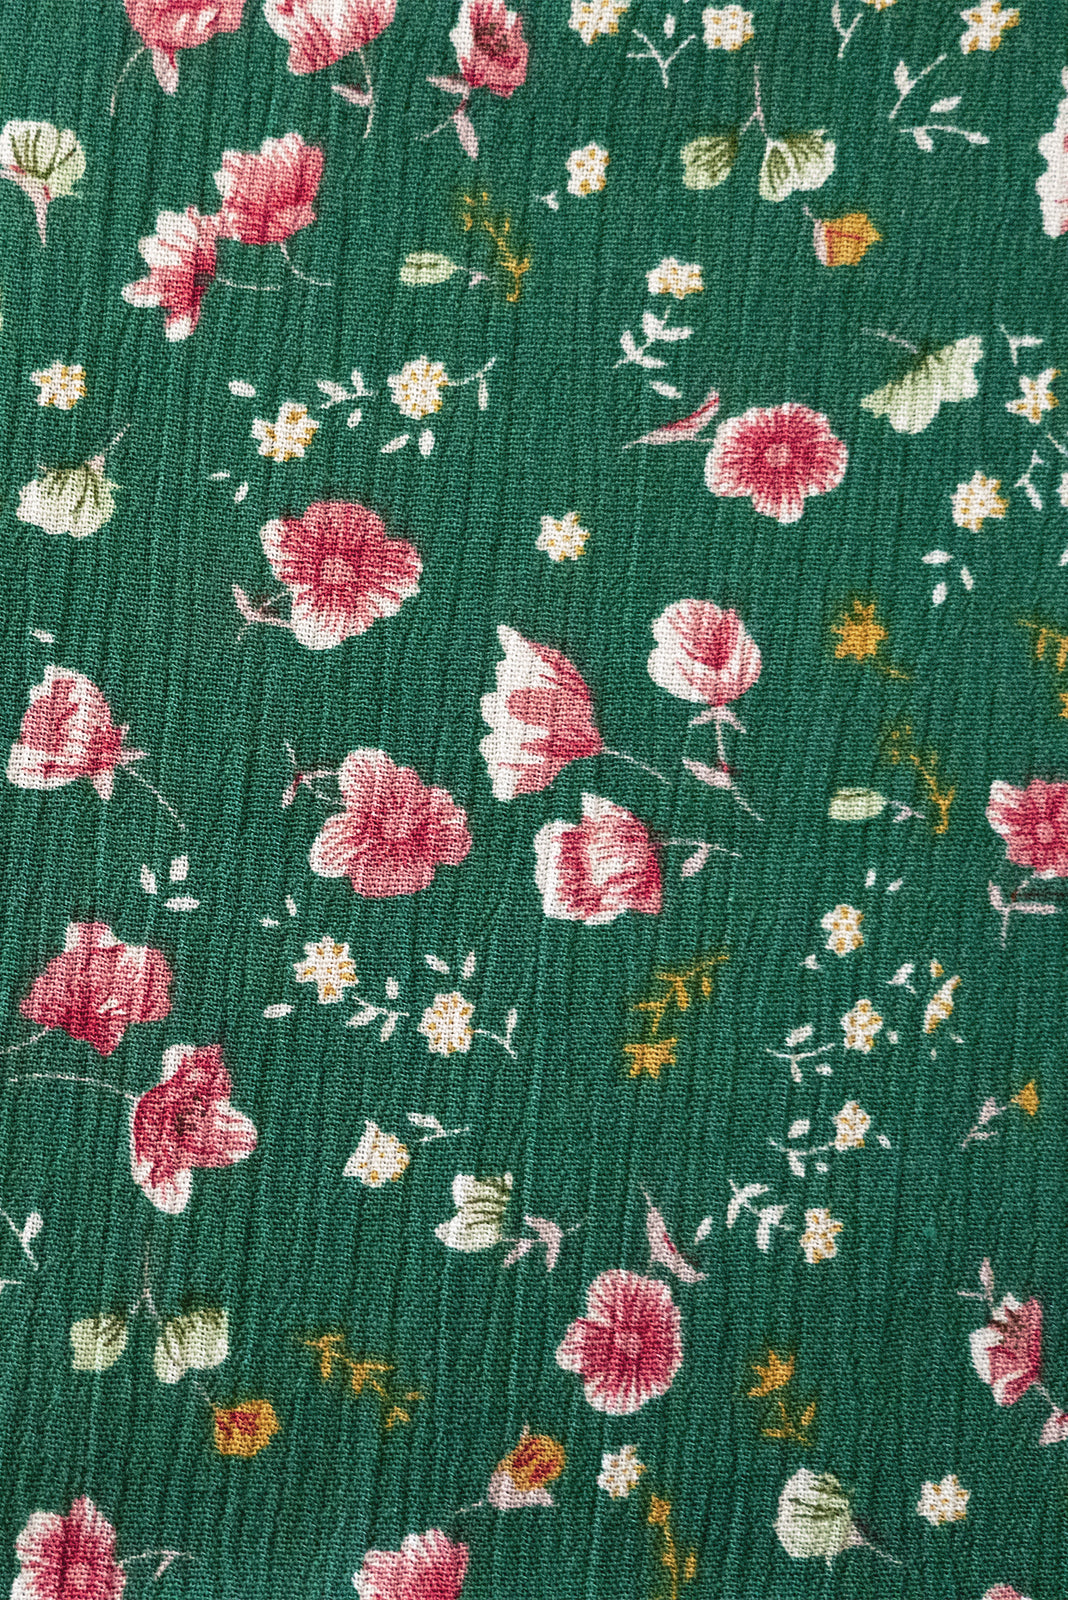 Fabric Swatch of Lulu Bell Green Rosebuds Mini Dress featuring crinkle textured woven 100% viscose in rich green base with sweet ditzy floral print.